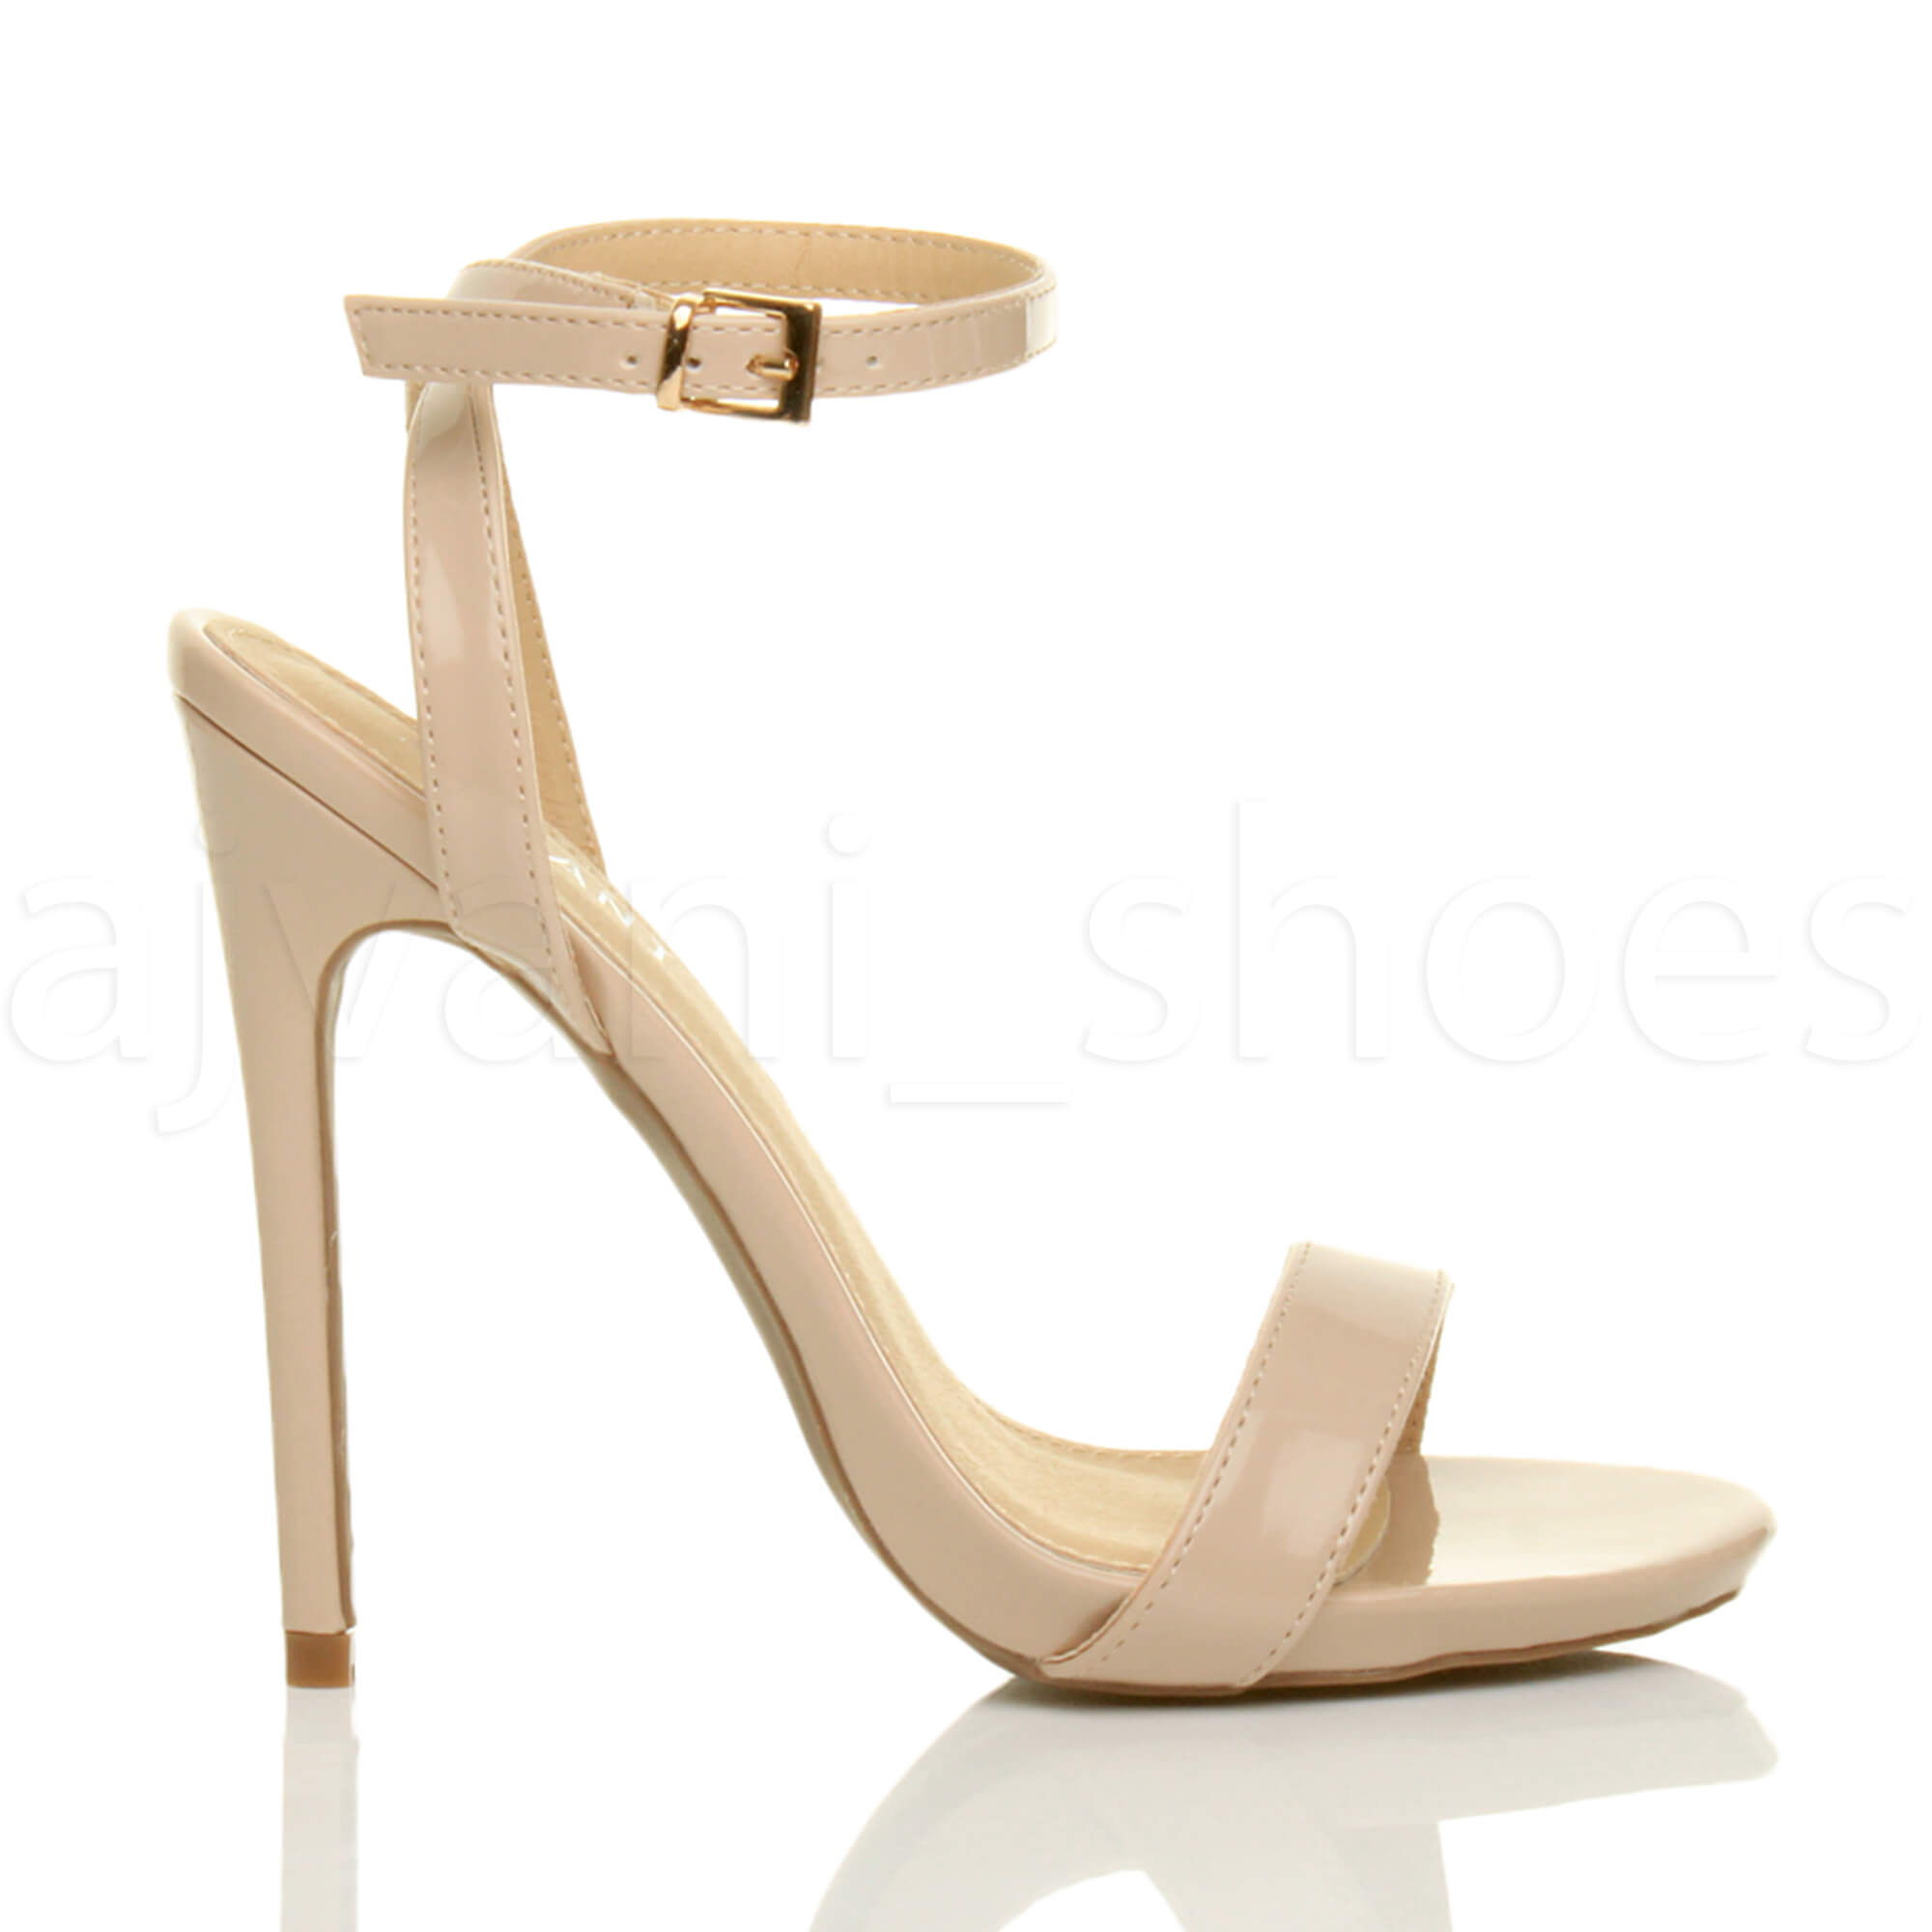 WOMENS-LADIES-HIGH-HEEL-ANKLE-STRAP-BARELY-THERE-STRAPPY-SANDALS-SHOES-SIZE thumbnail 73